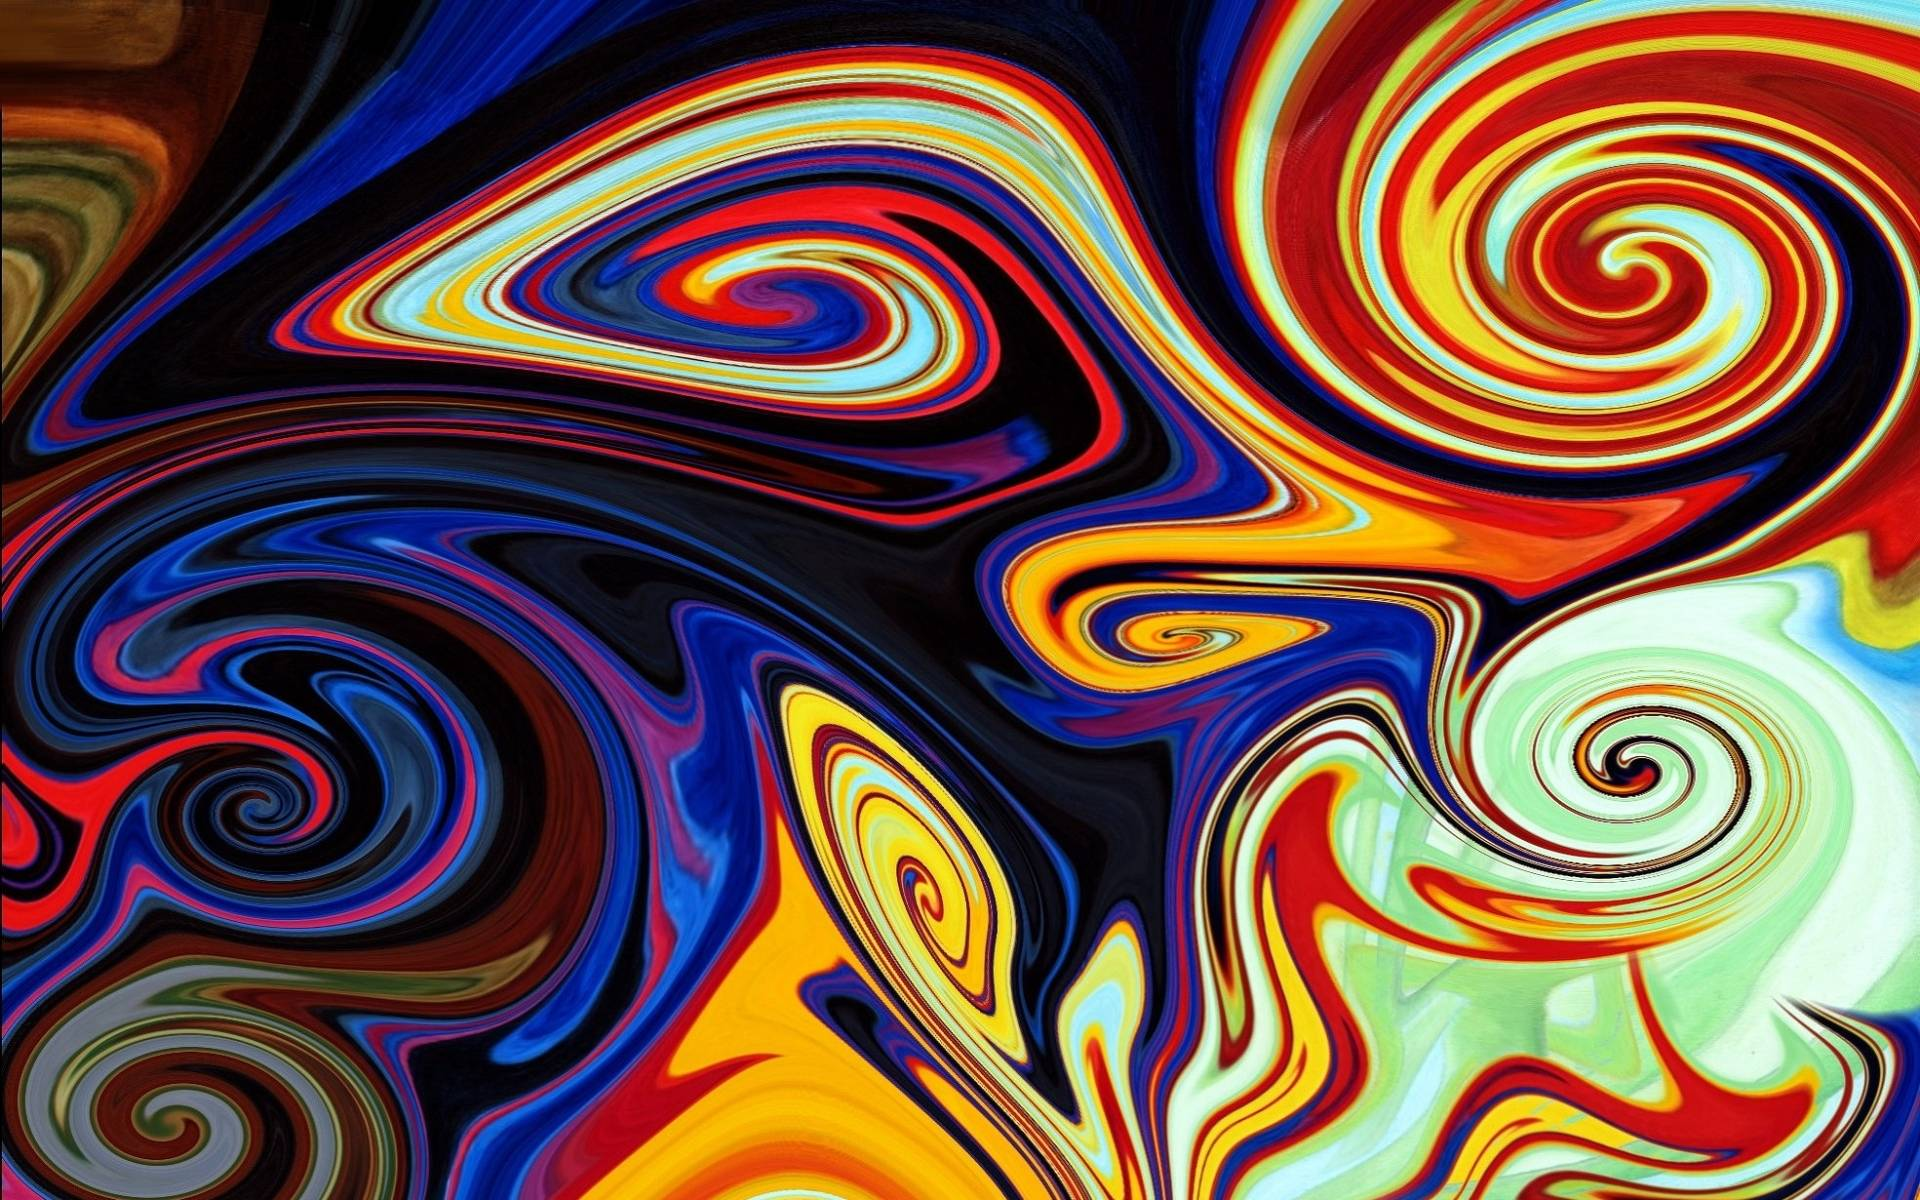 Trippy Desktop Backgrounds  Wallpaper Cave